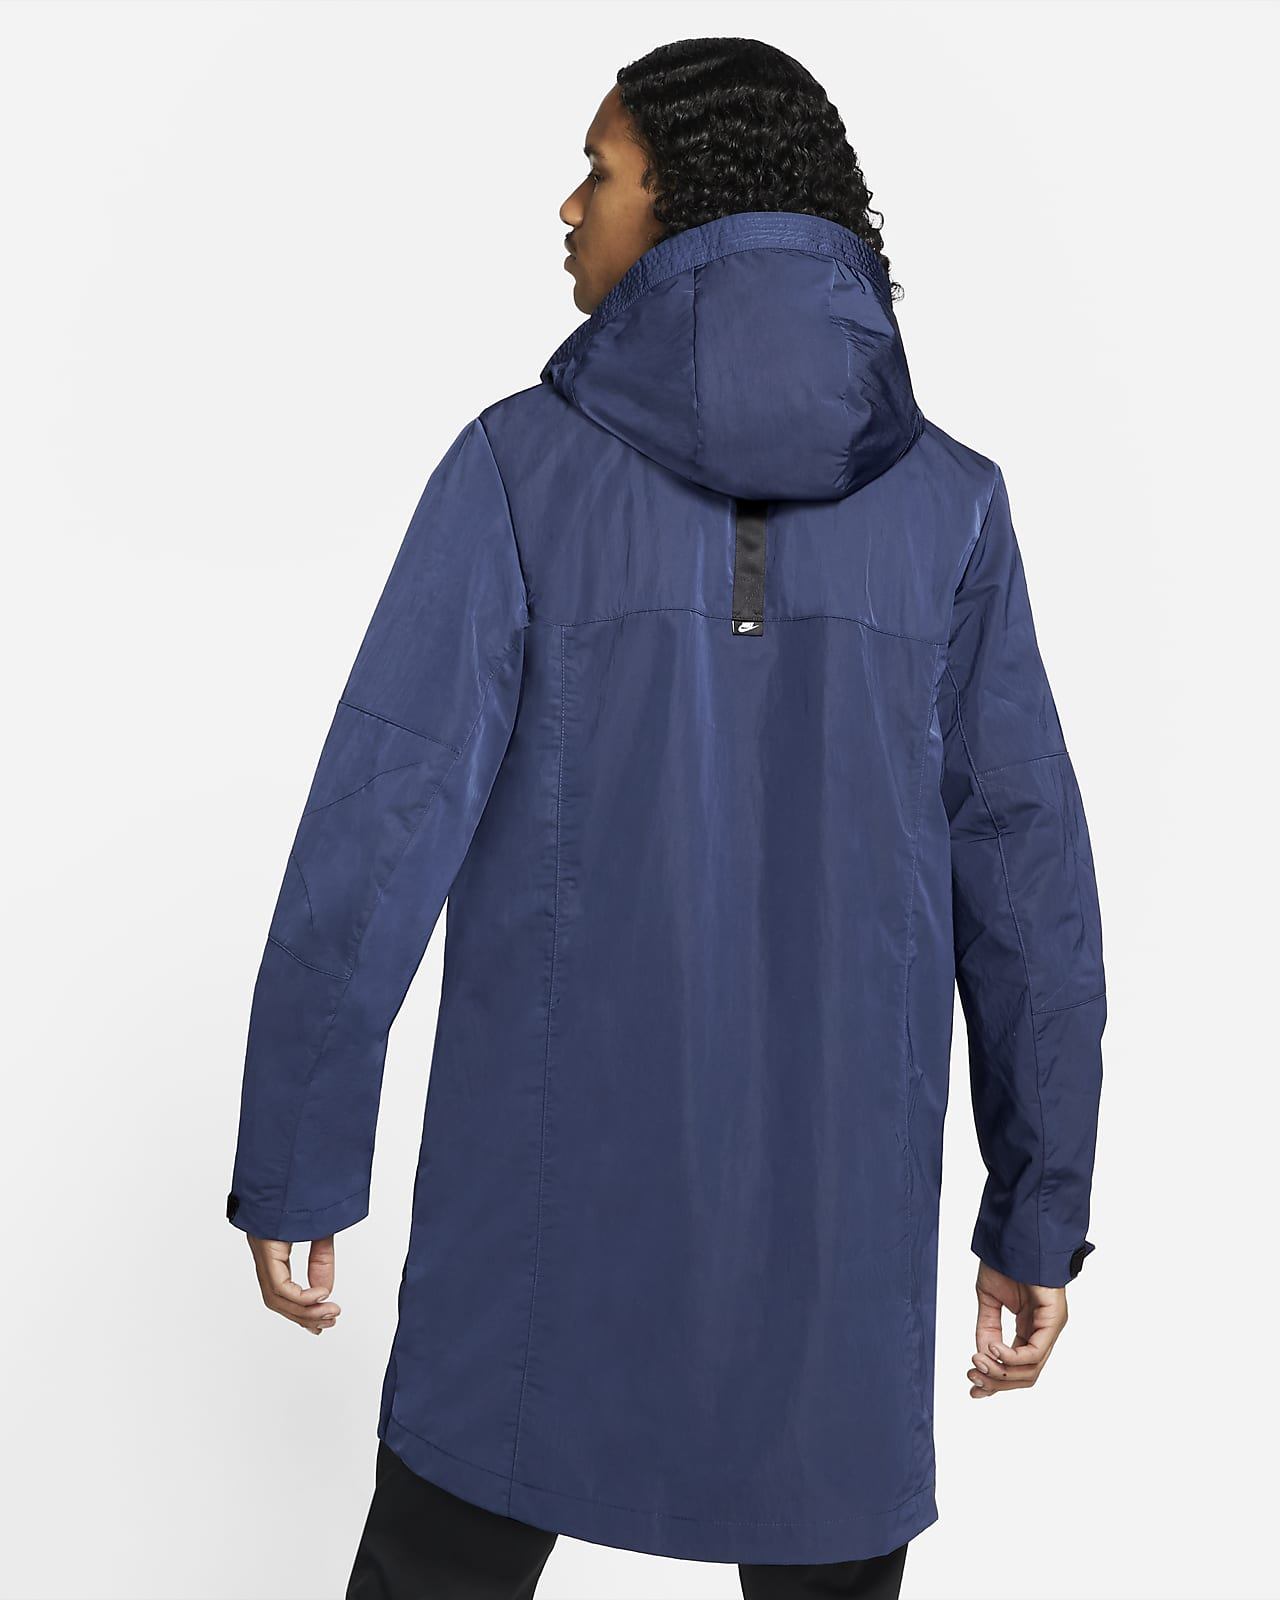 Nike Sportswear Men's Hooded Parka